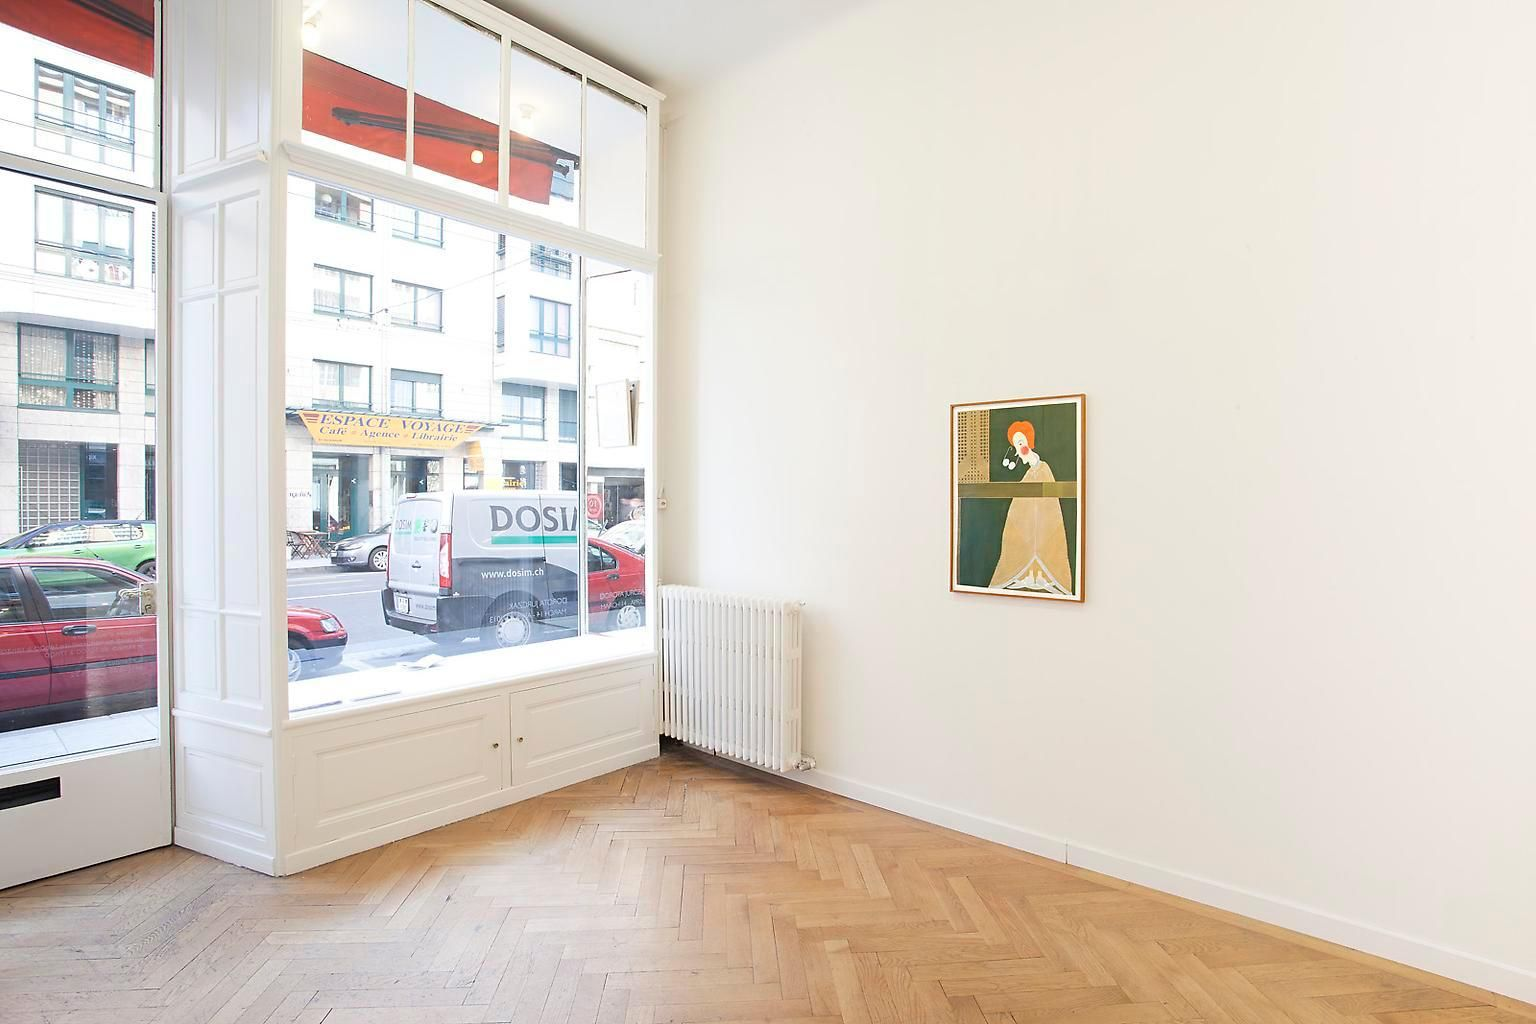 Installation view, Dorota Jurczak, Marc Jancou, Geneva, March 14 - April 27, 2014